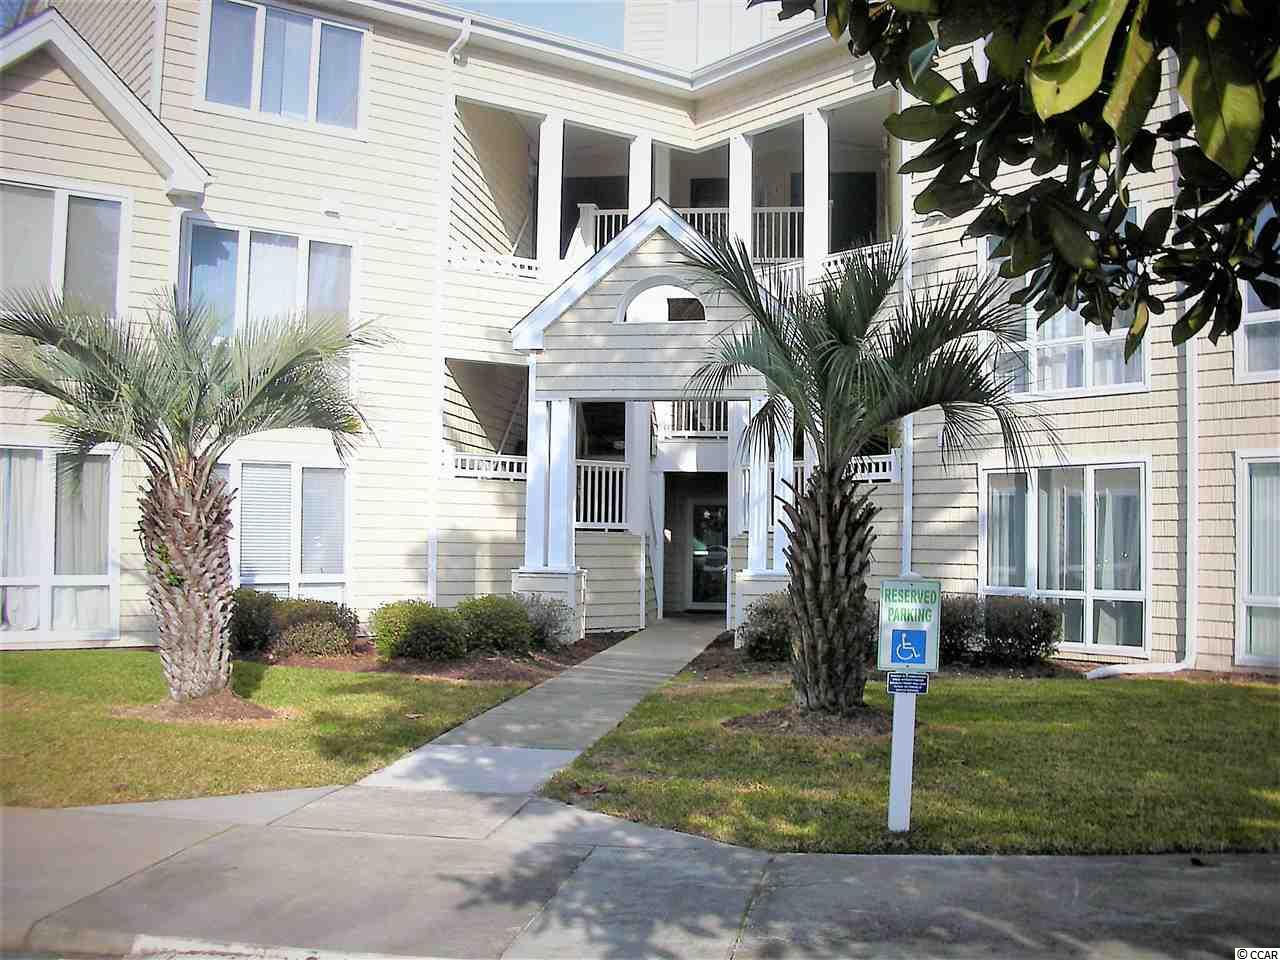 CLEAN 2 bedroom, 2 bath condo in Waterway Landing, a gated Intracoastal Waterway community.  It has a Split bedroom plan so there is more privacy with this plan and the Master has a Walk in Closet. It has a nice laundry room with a full size washer and dryer. Both the family room and master bedroom have sliding doors leading to the oversize screened in porch with views of the pool and nature. Master bedroom & bath have a double sinks with a vanity area. This gated community has 2 outdoor pools, a hot tub, grill & picnic area, day docks & piers on the Waterway enjoy your coffee or a meal while enjoying the awesome view. There is an on-site boat/trailer/RV parking and bike racks. The White sandy beaches of the Atlantic Ocean and Ocean Drive is just over a mile away. The location for restaurants, Shopping and Golf and all the fun stuff to do at the beach is only a short drive to it all. You will be amazed by this condo and it's Location!! Remember Opportunities Don't go Away they just go to somebody Else!!!!